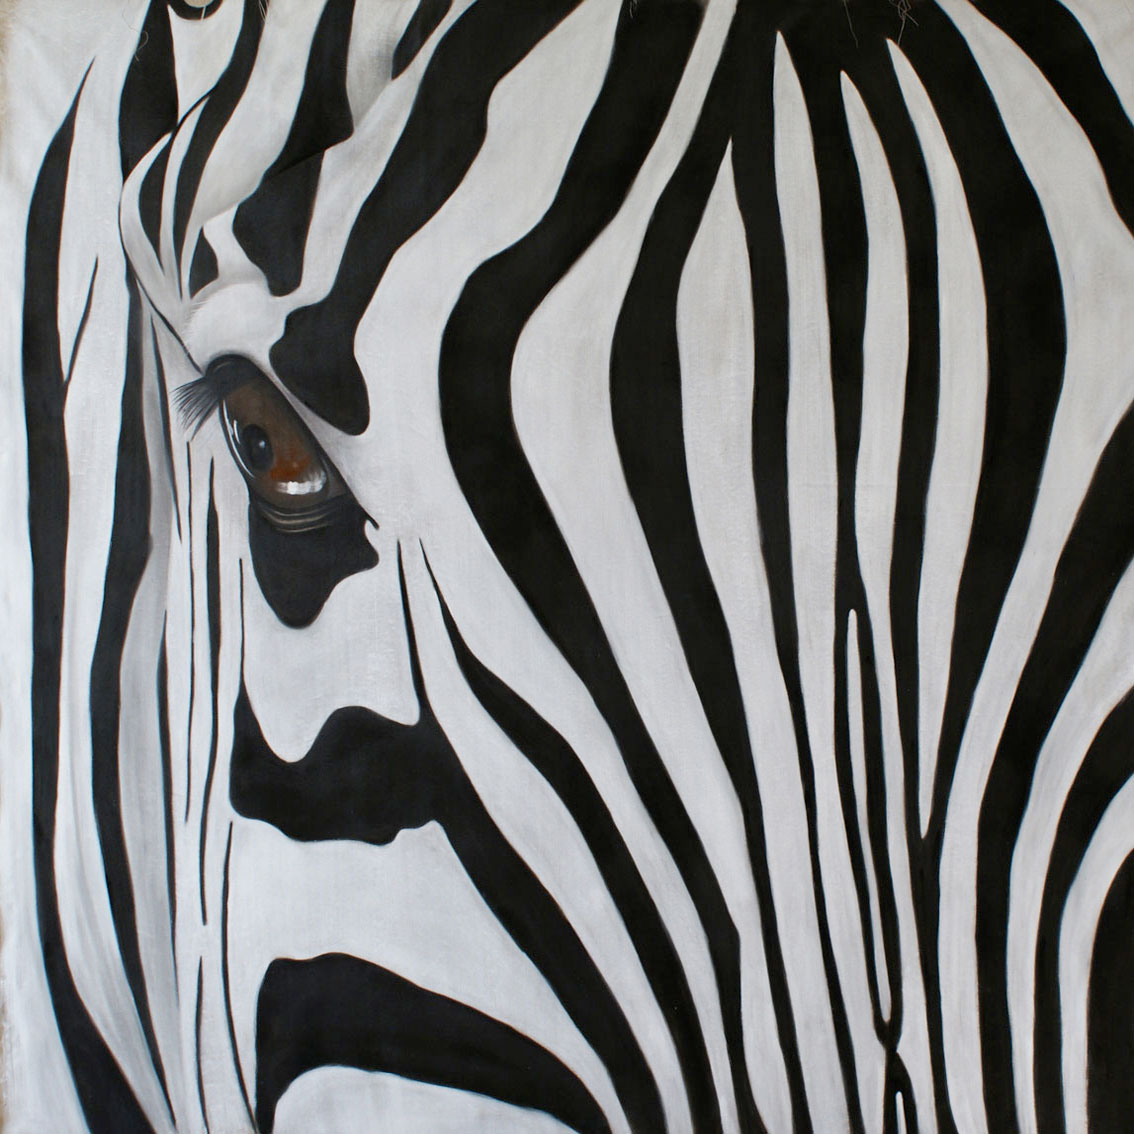 Zebre divers Thierry Bisch painter animals painting art decoration hotel design interior luxury nature biodiversity conservation